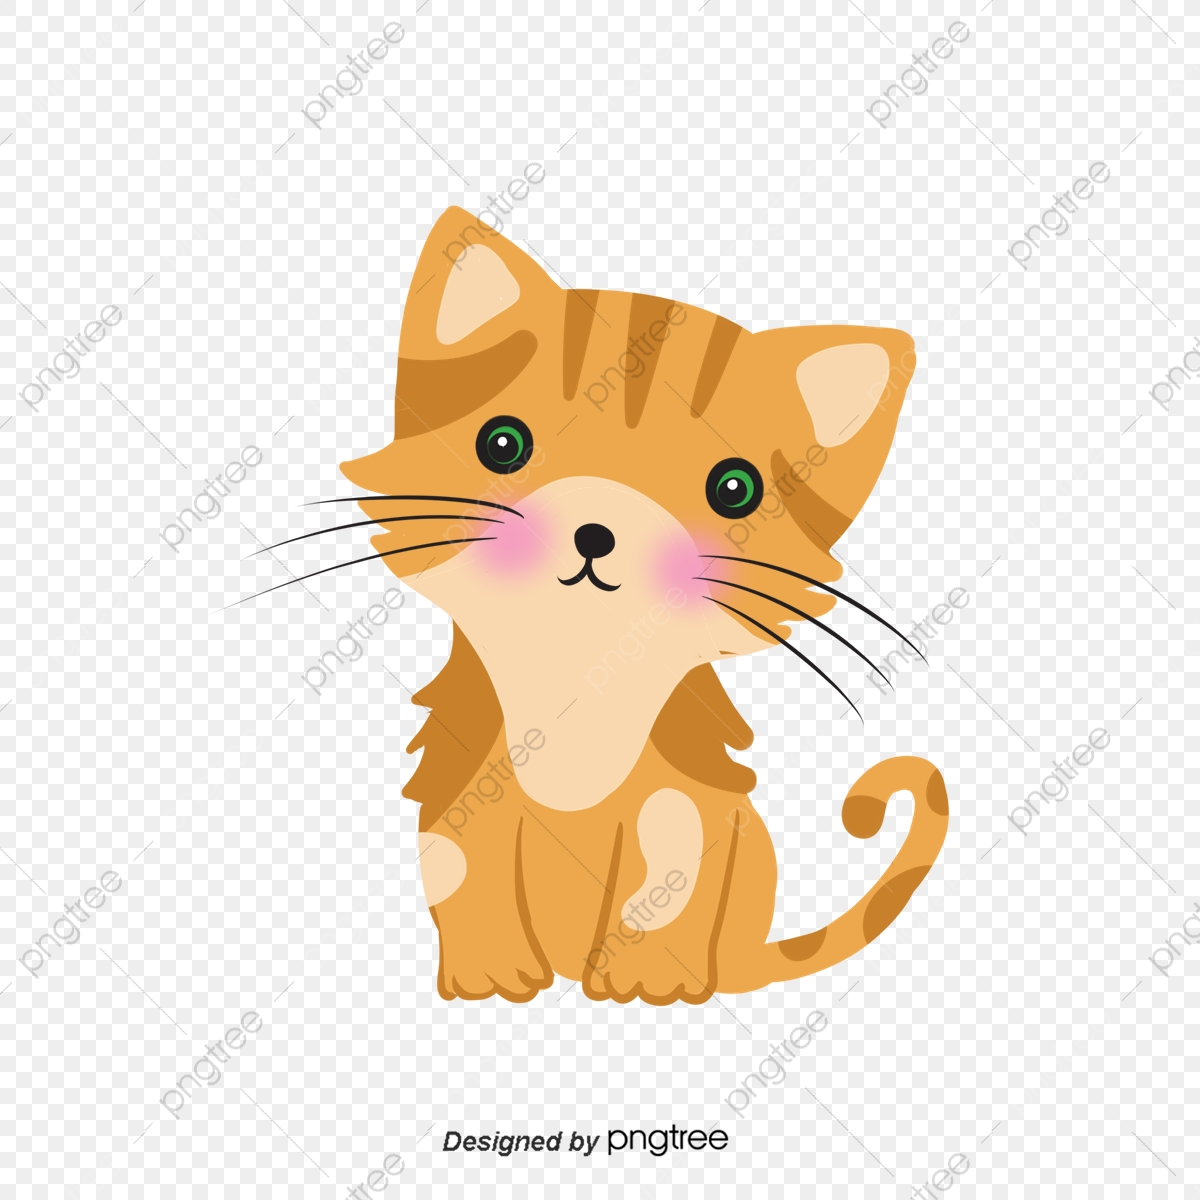 Png transparent image and. Cat clipart